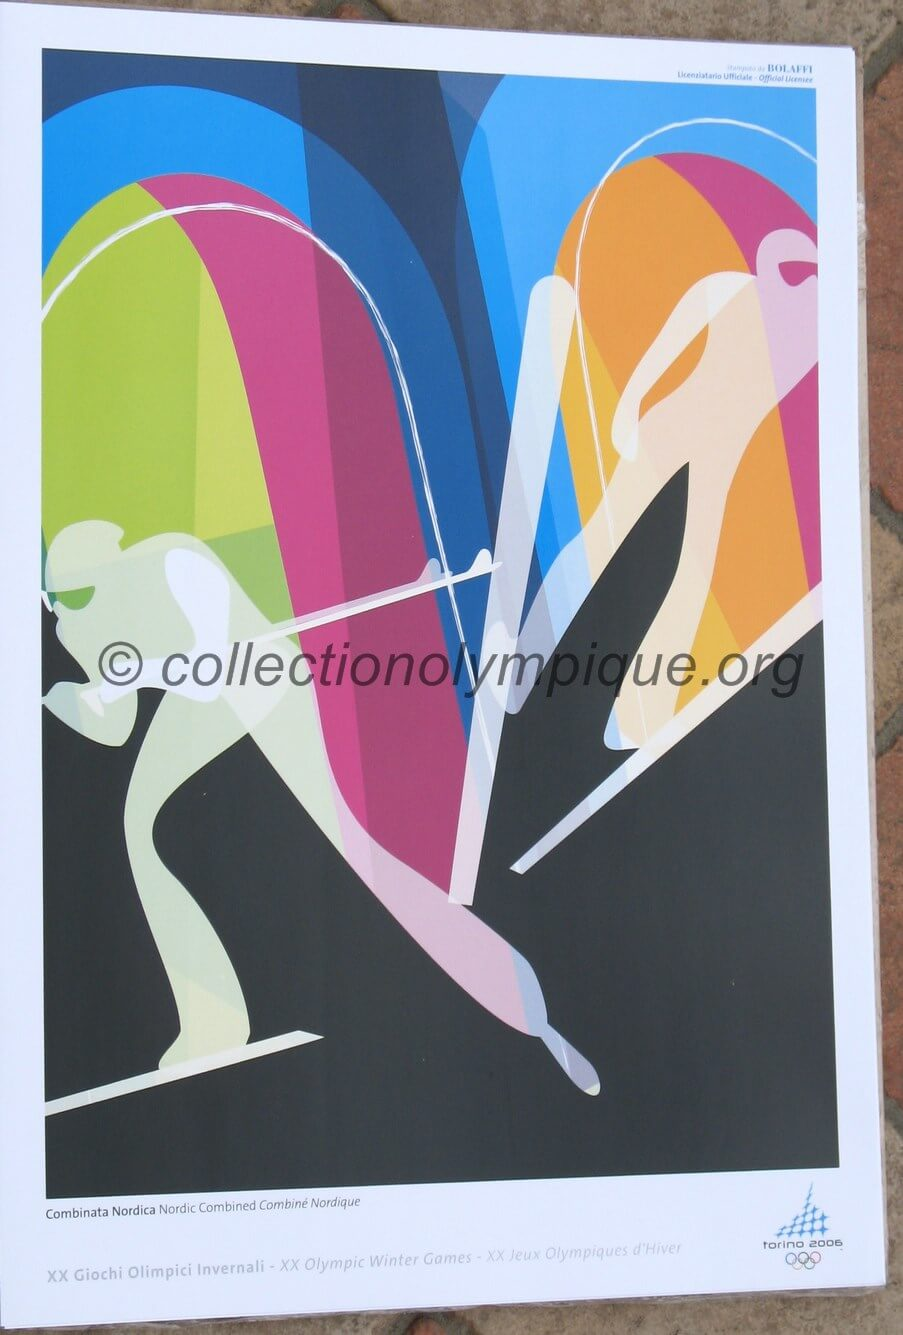 2006 Torino Olympic poster Nordic combined 42 x 29,5 cm